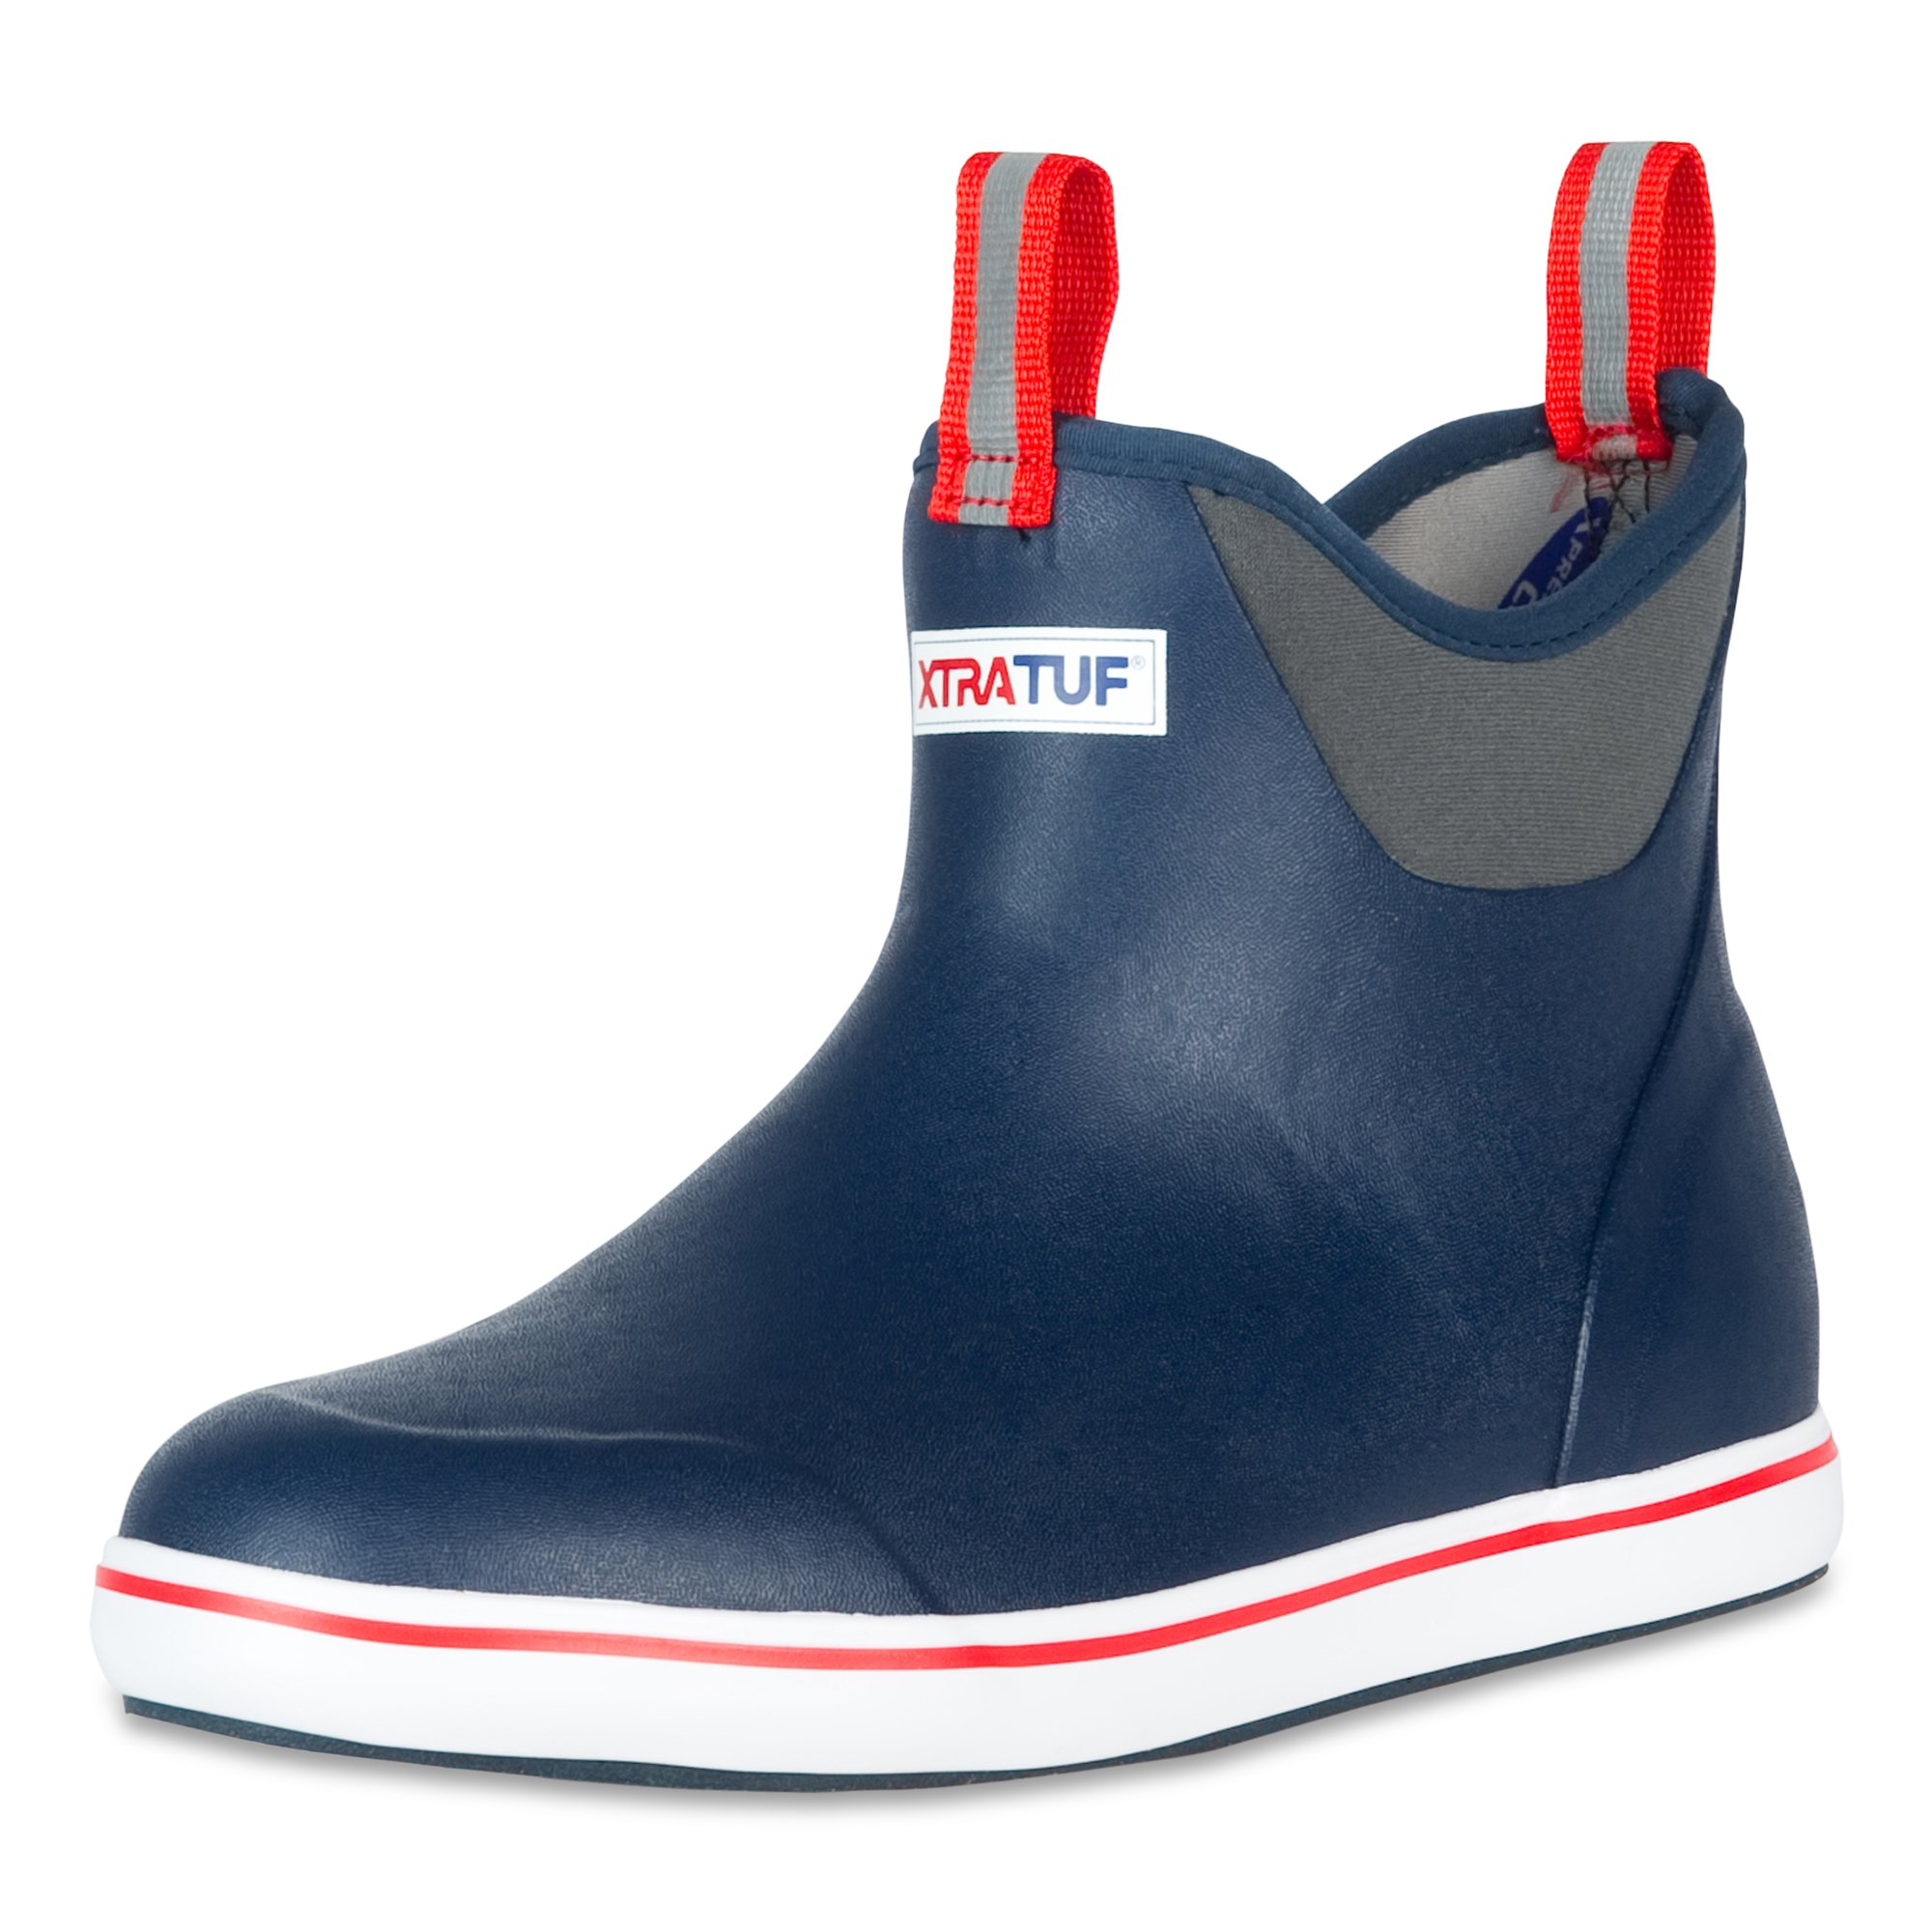 Xtratuf 22733-NVY-100 Performance Series 6'' Men's Full Rubber Ankle Deck Boots, Navy & Red (22733)